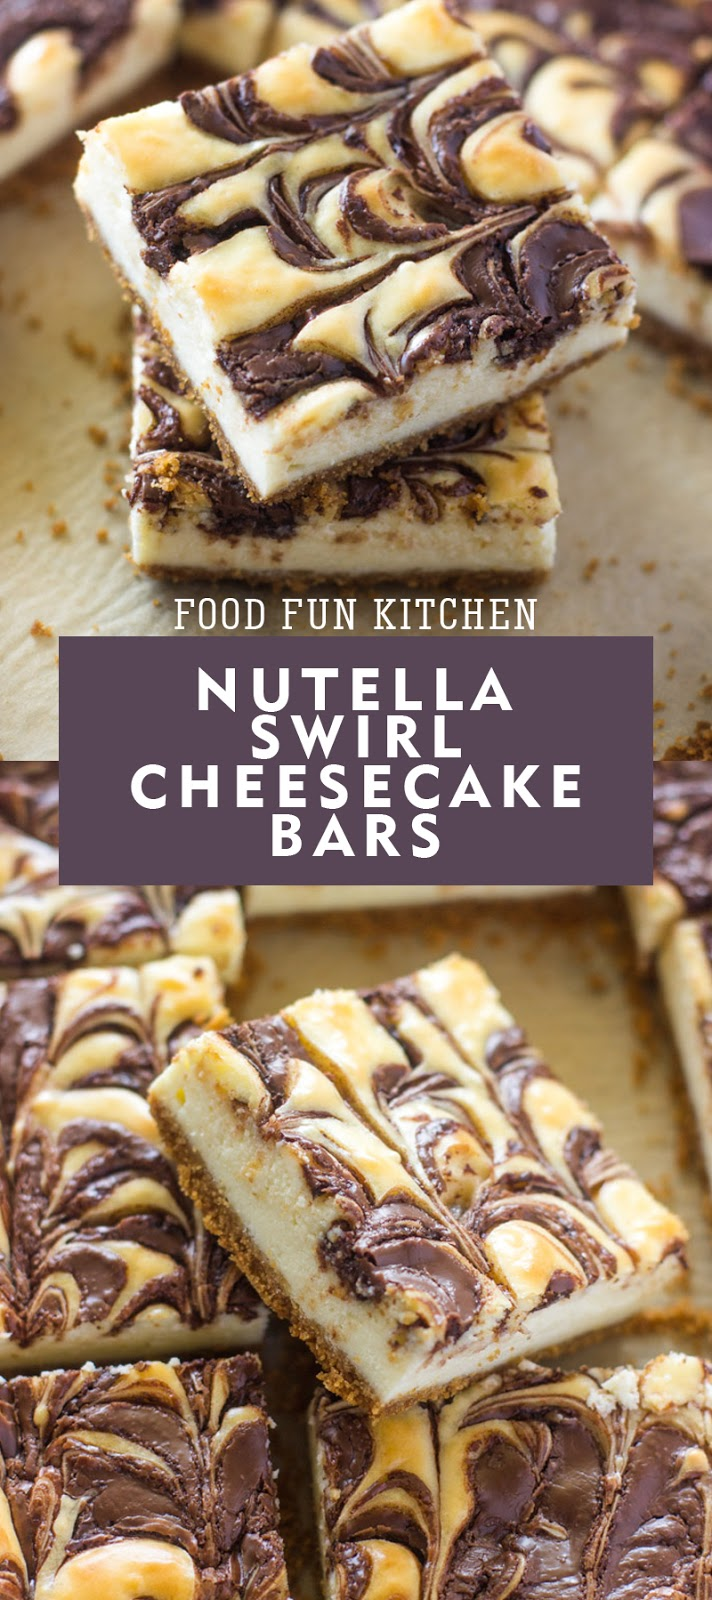 NUTELLA SWIRL CHEESECAKE BARS